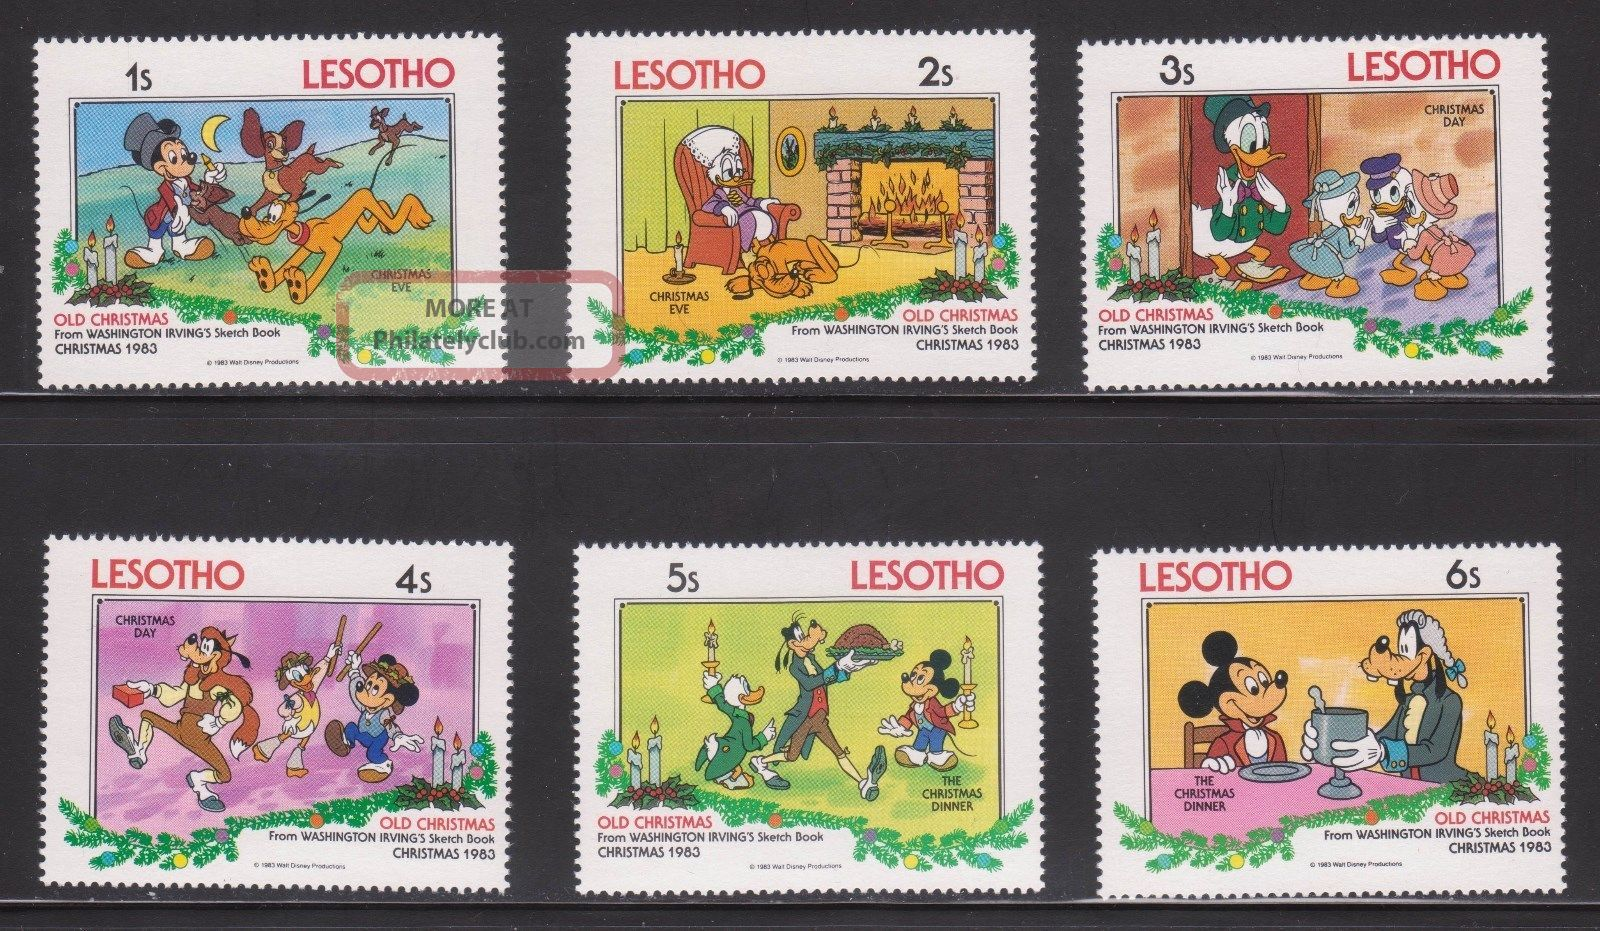 Lesotho - Sc 412 - 17 - Disney Characters - Christmas ' 83 Topical Stamps photo